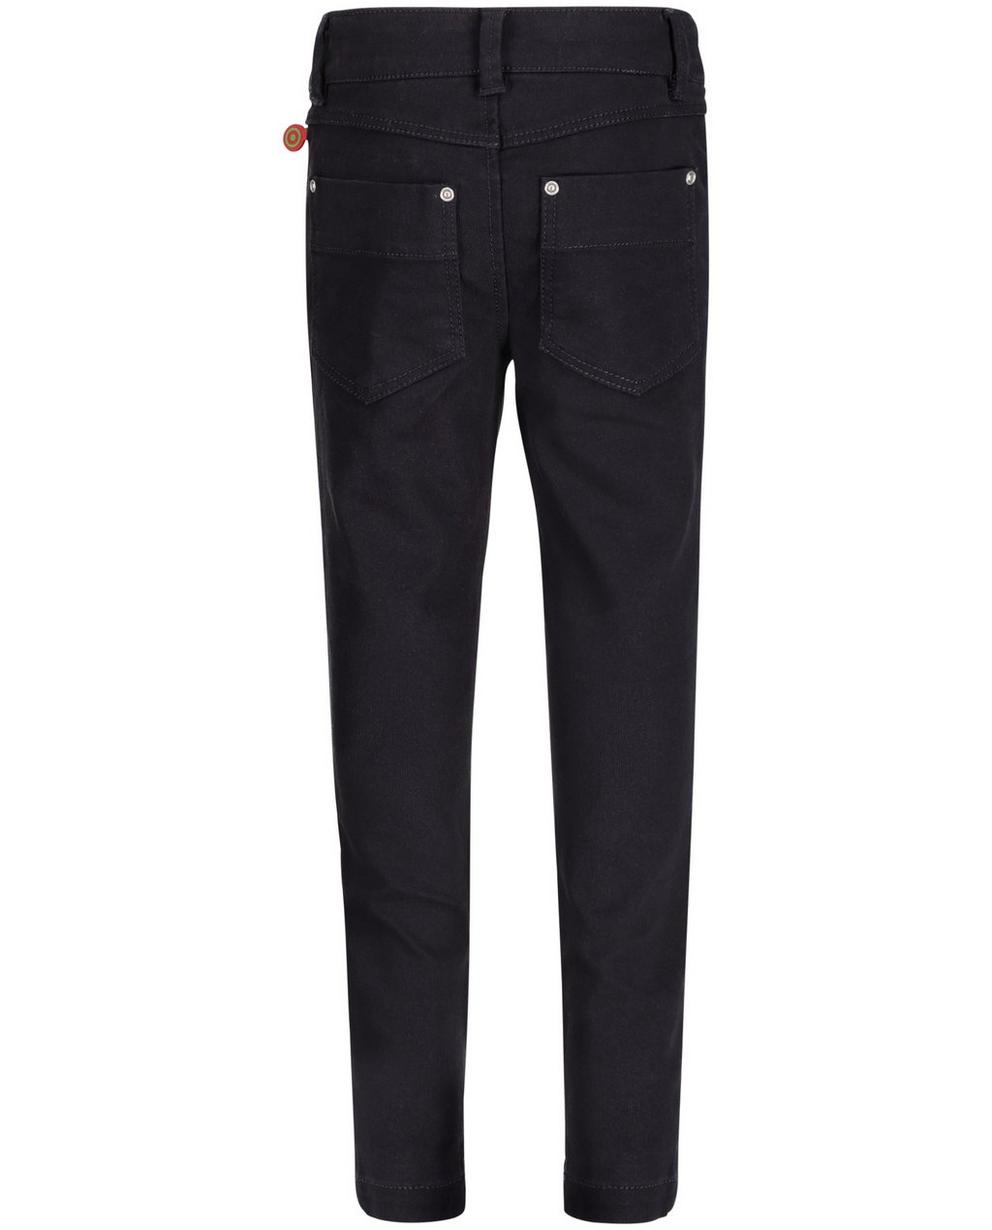 Pantalons - dark grey -